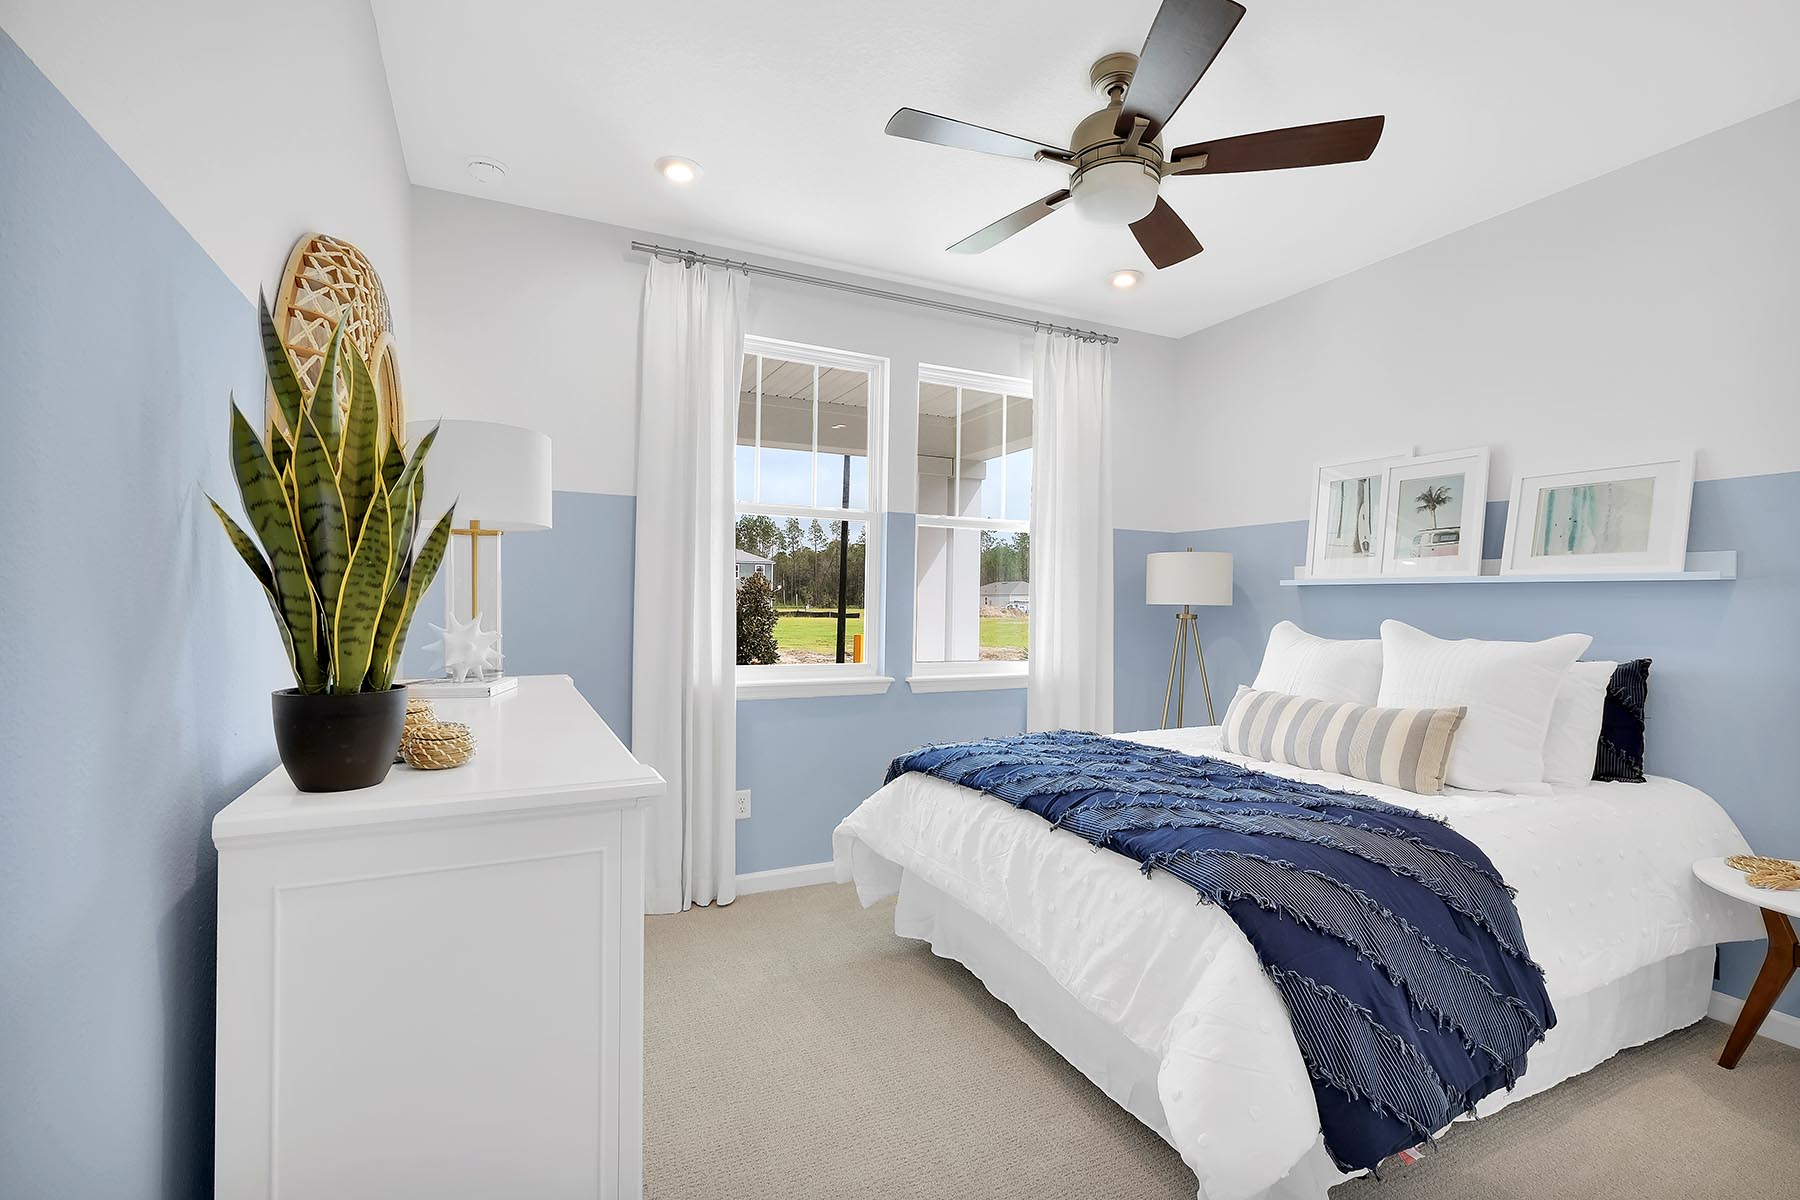 Elm Plan Bedroom at Forest Park at Wildlight in Yulee Florida by Mattamy Homes